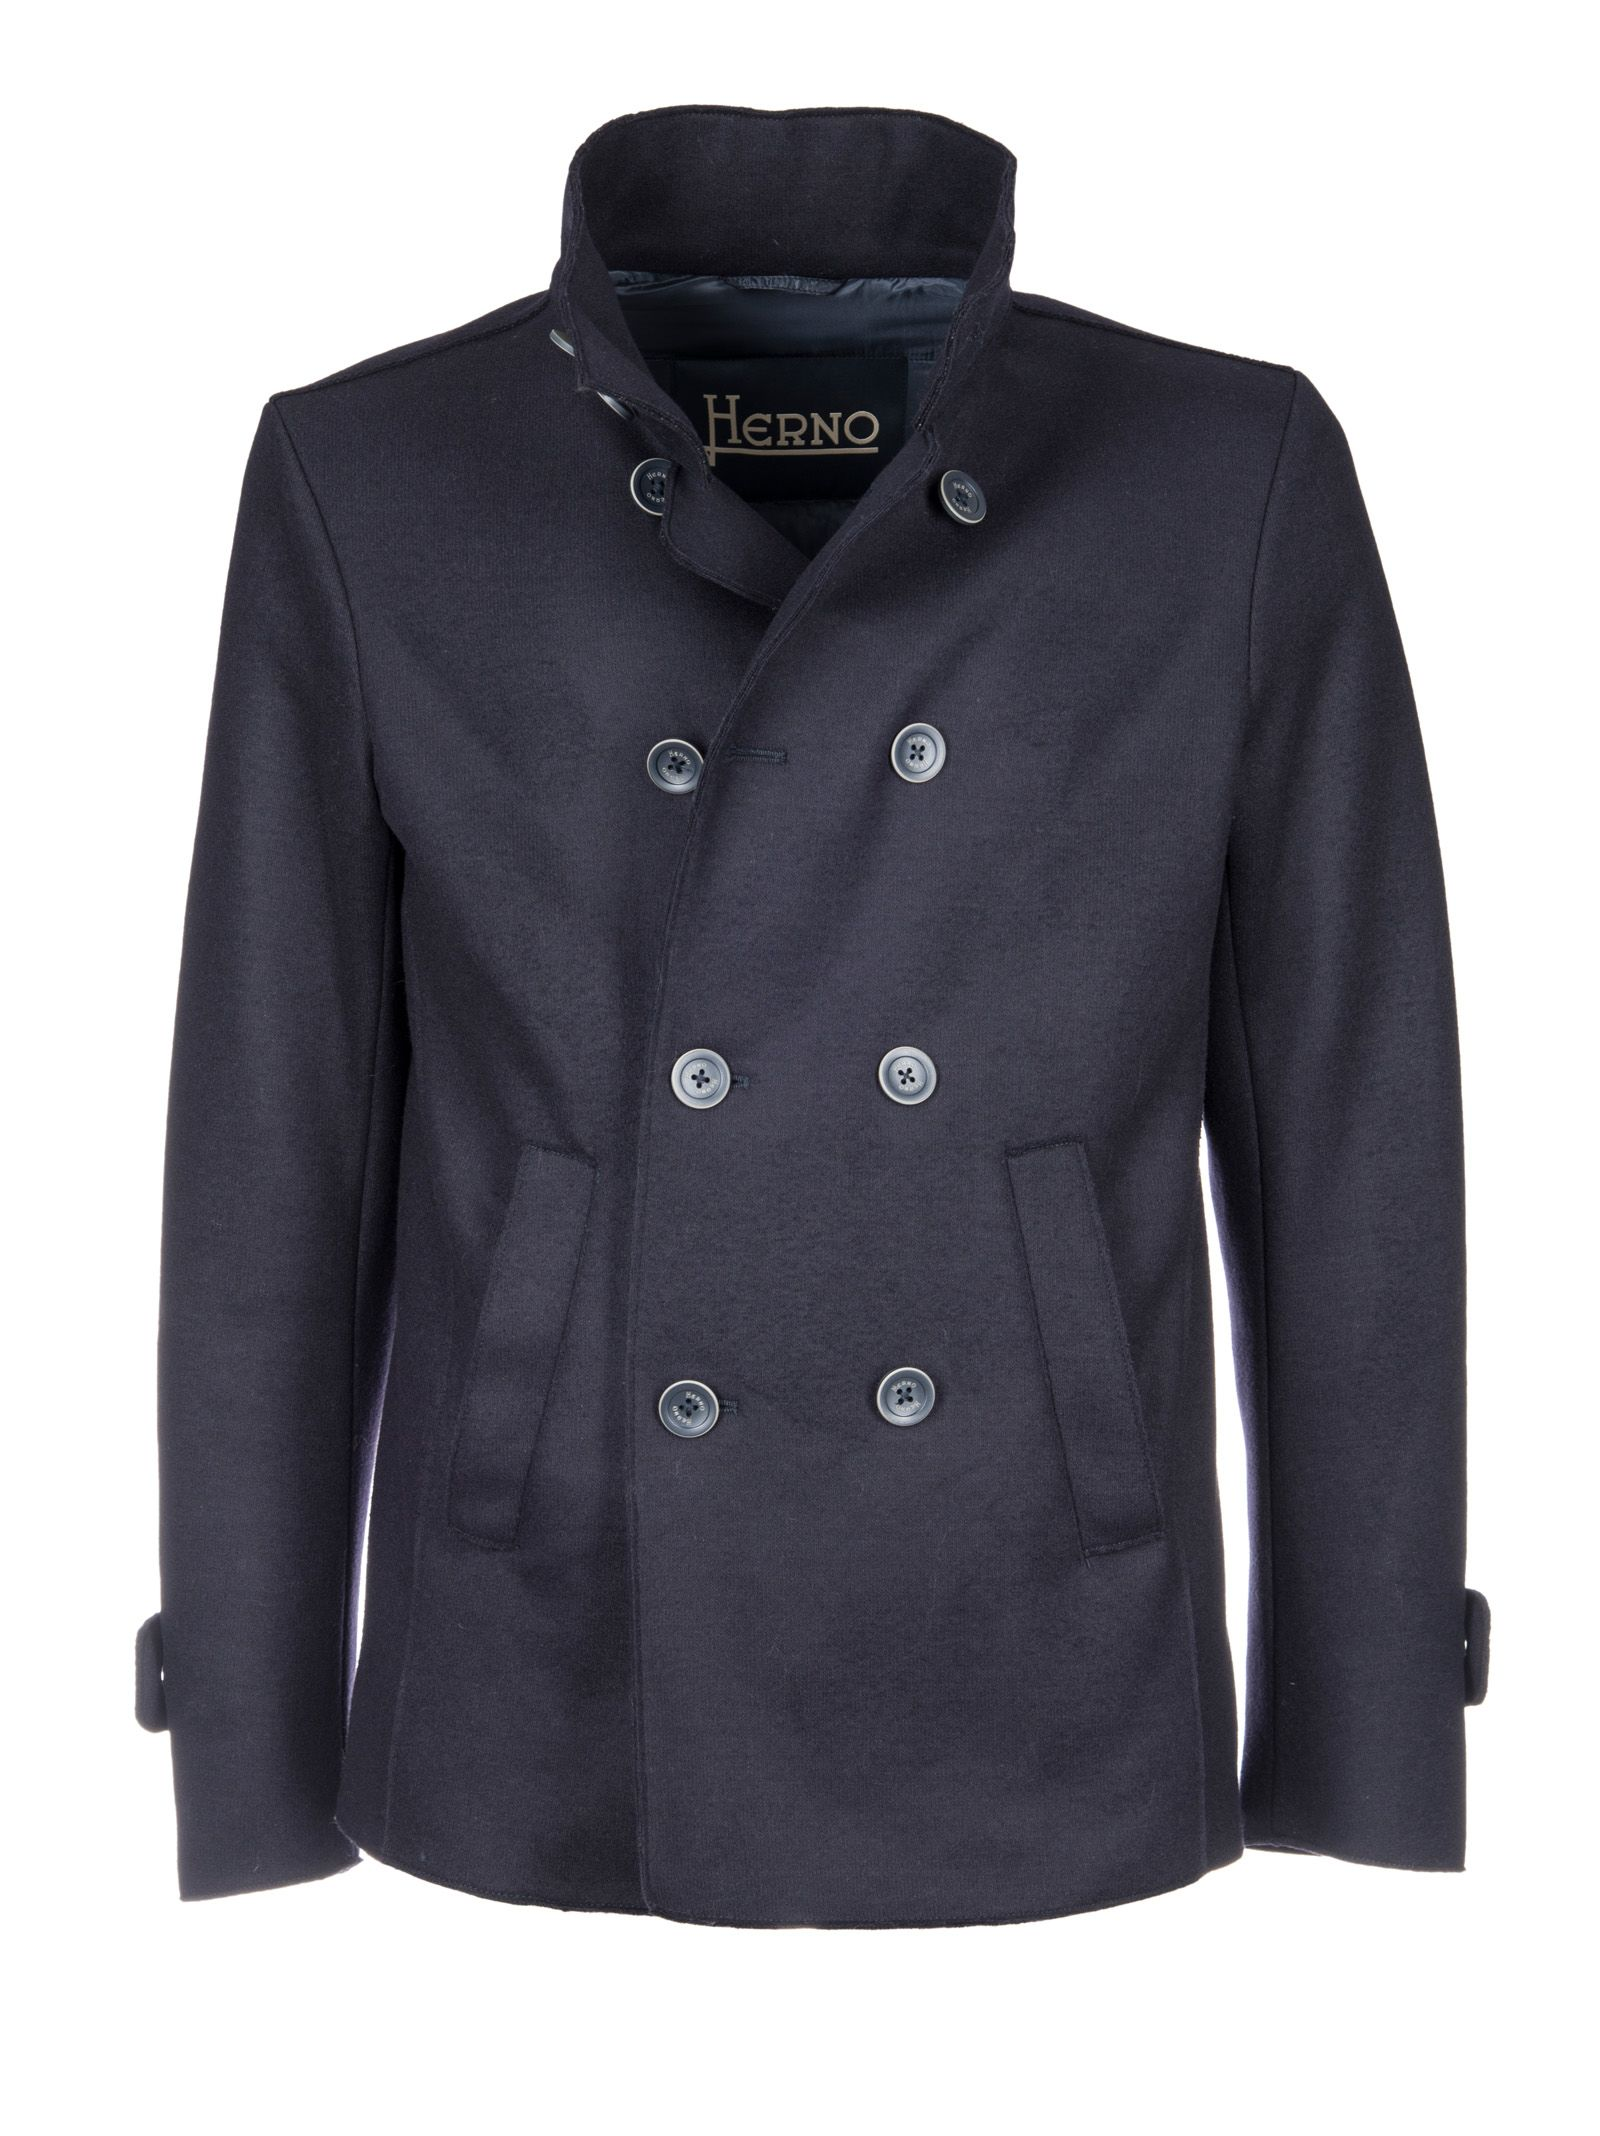 Herno Double Breasted Jacket